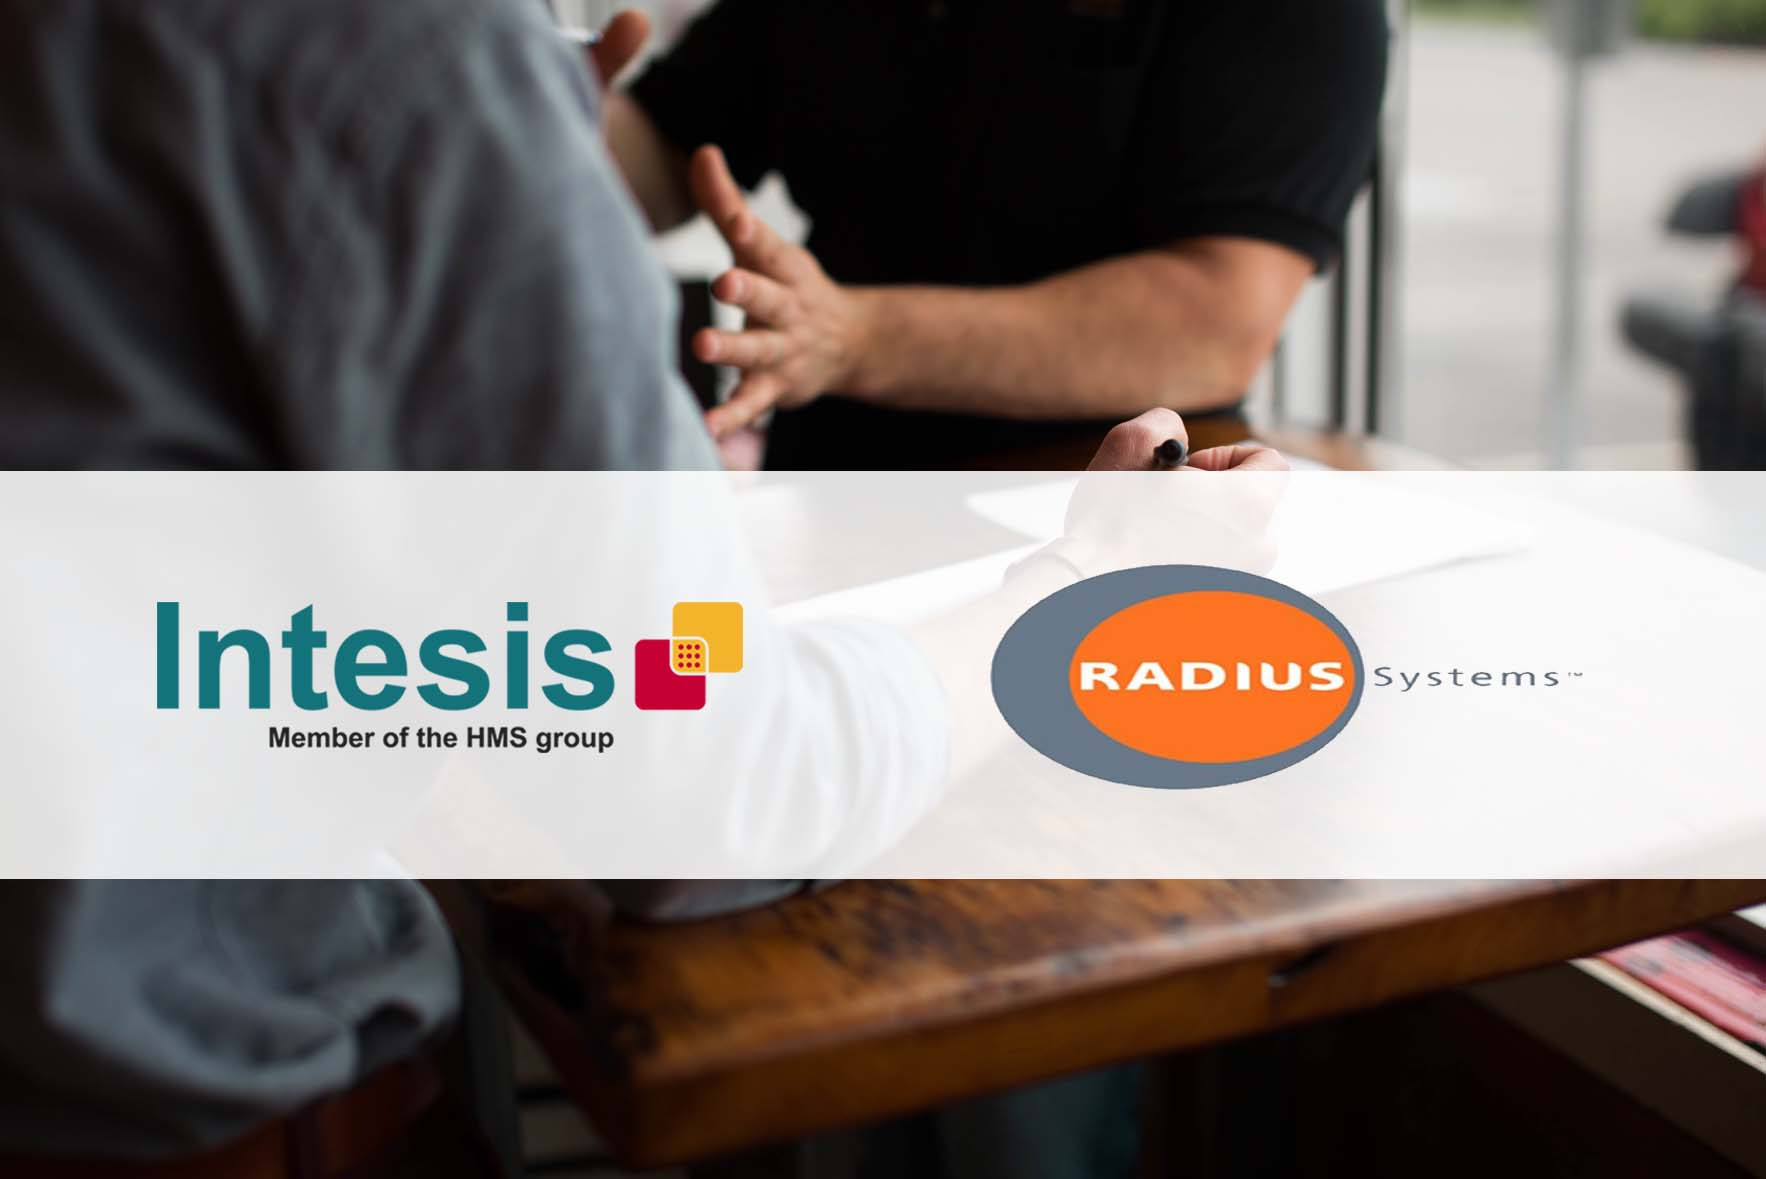 intesis-software-announces-an-exciting-new-partnership-with-radius-systems-llc